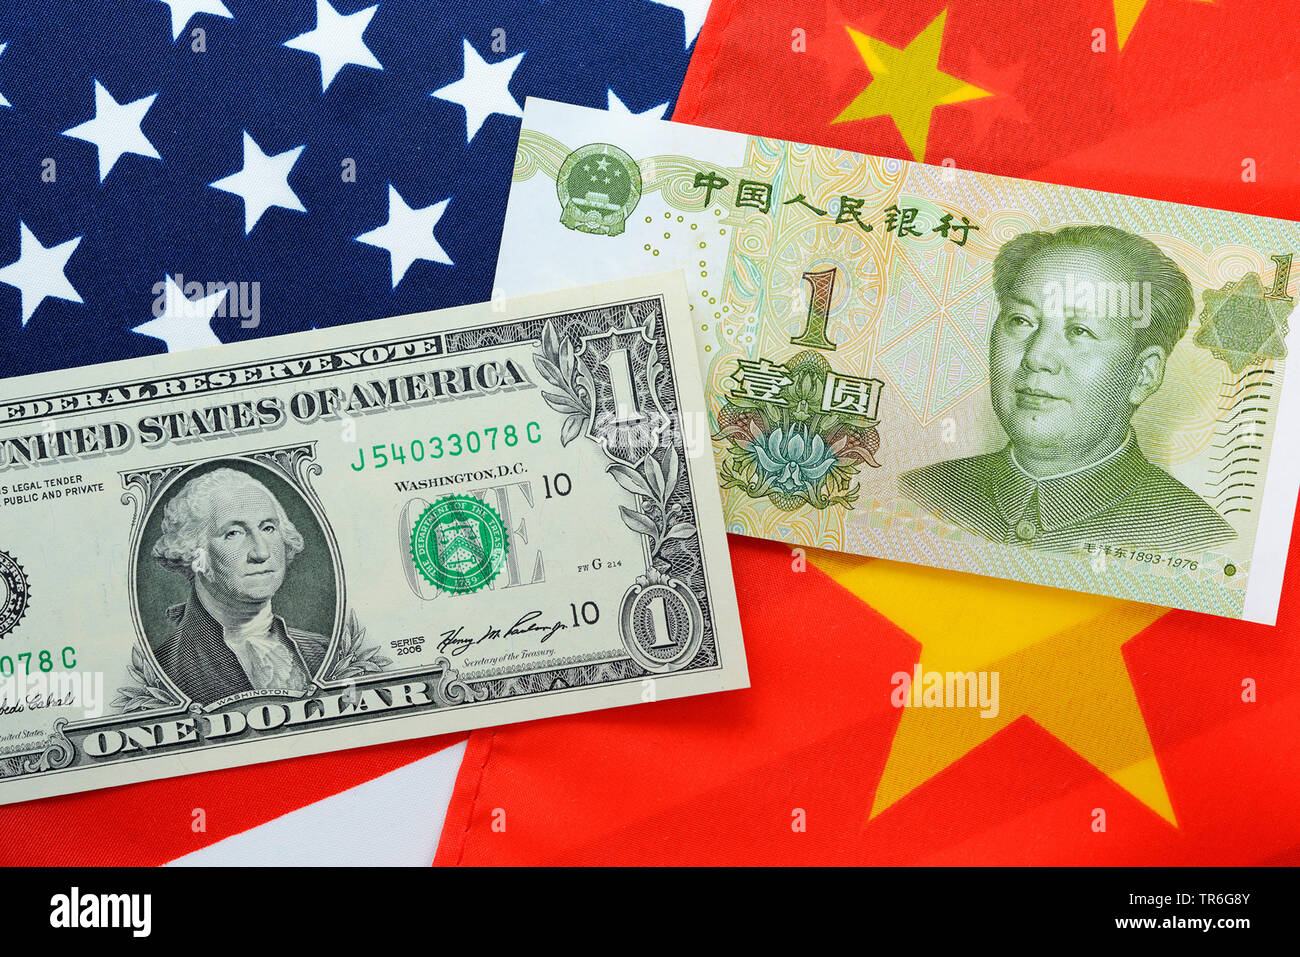 flaggs of USA and China with dollar and Yuan bills, threaten commercial war - Stock Image